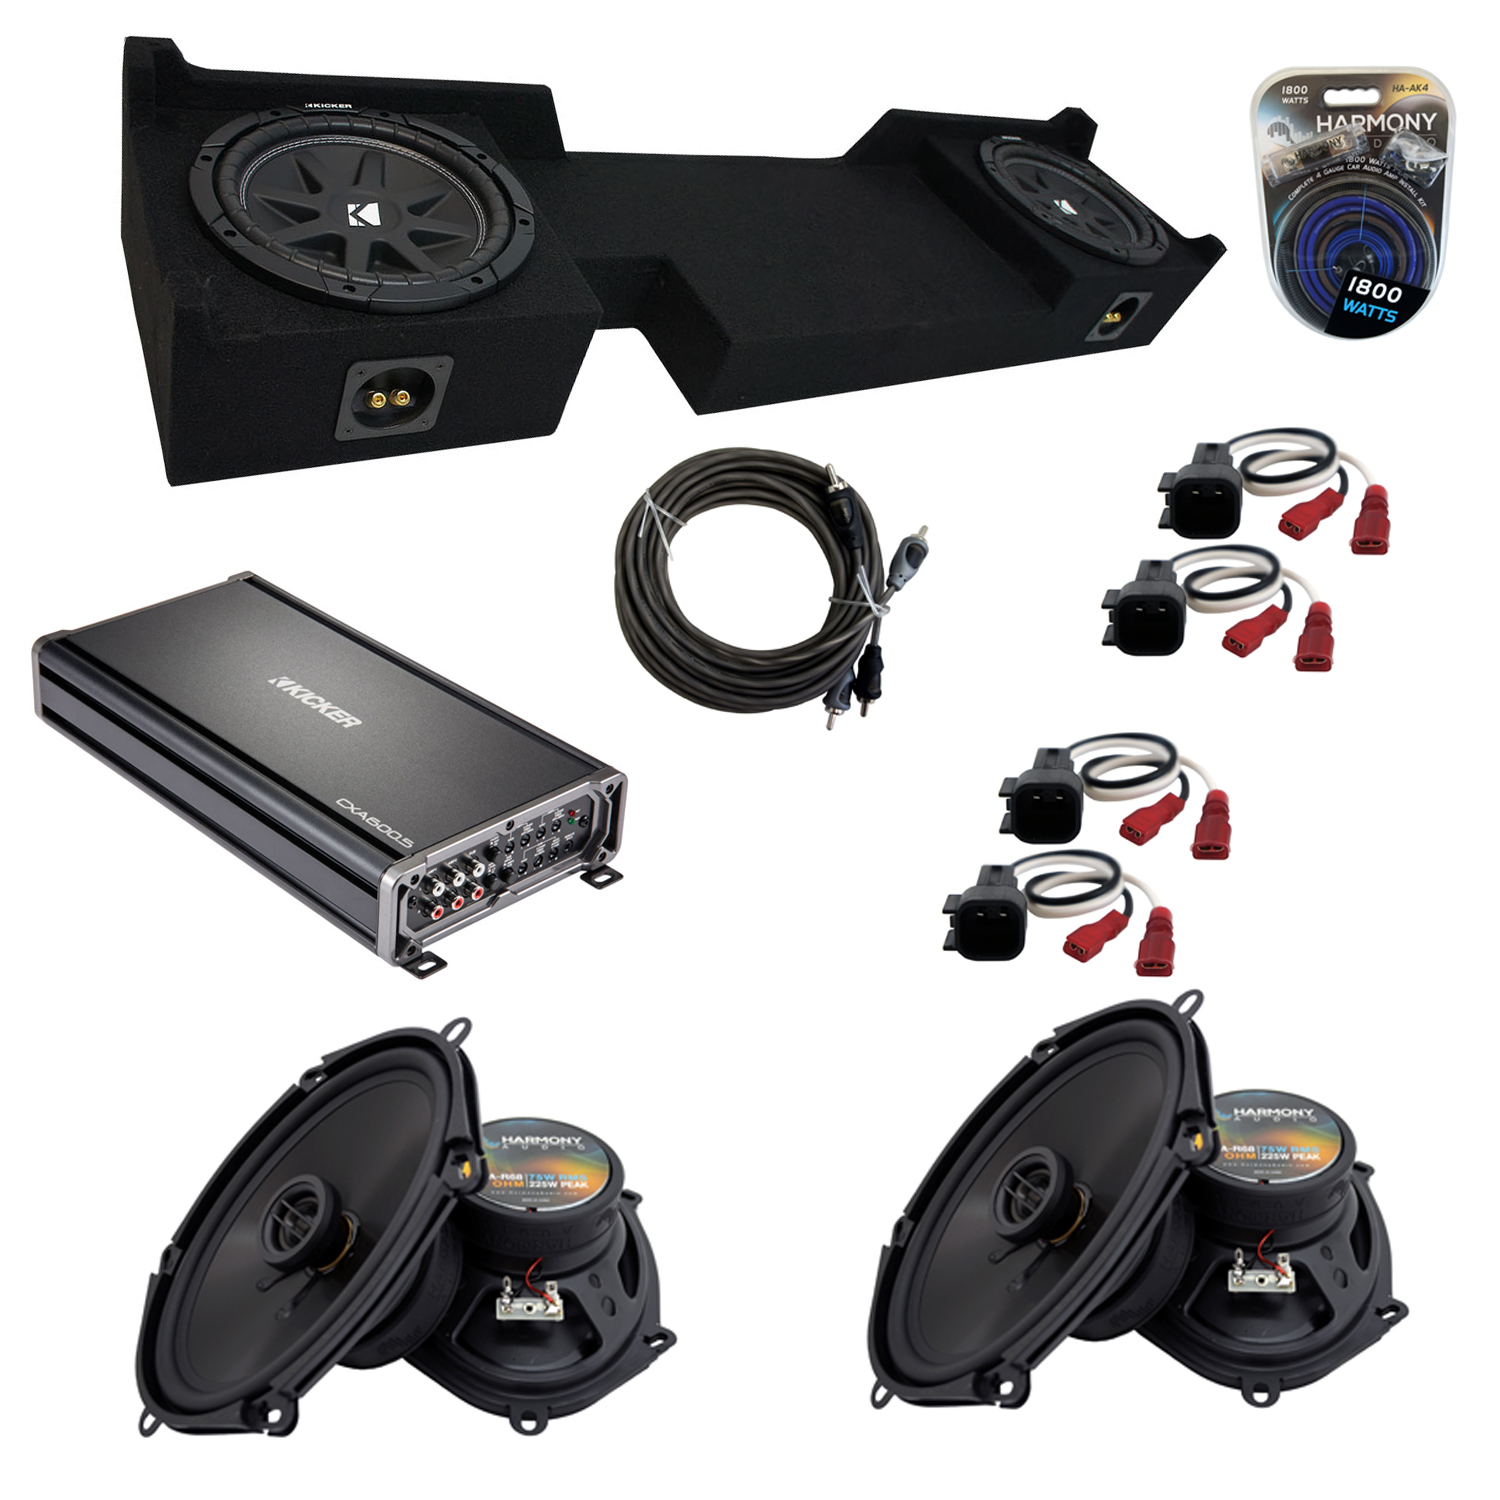 "Compatible with Ford F-150 2004-2008 Super Cab Truck Kicker Dual 10"" Sub Box Speakers & Amp Pack"